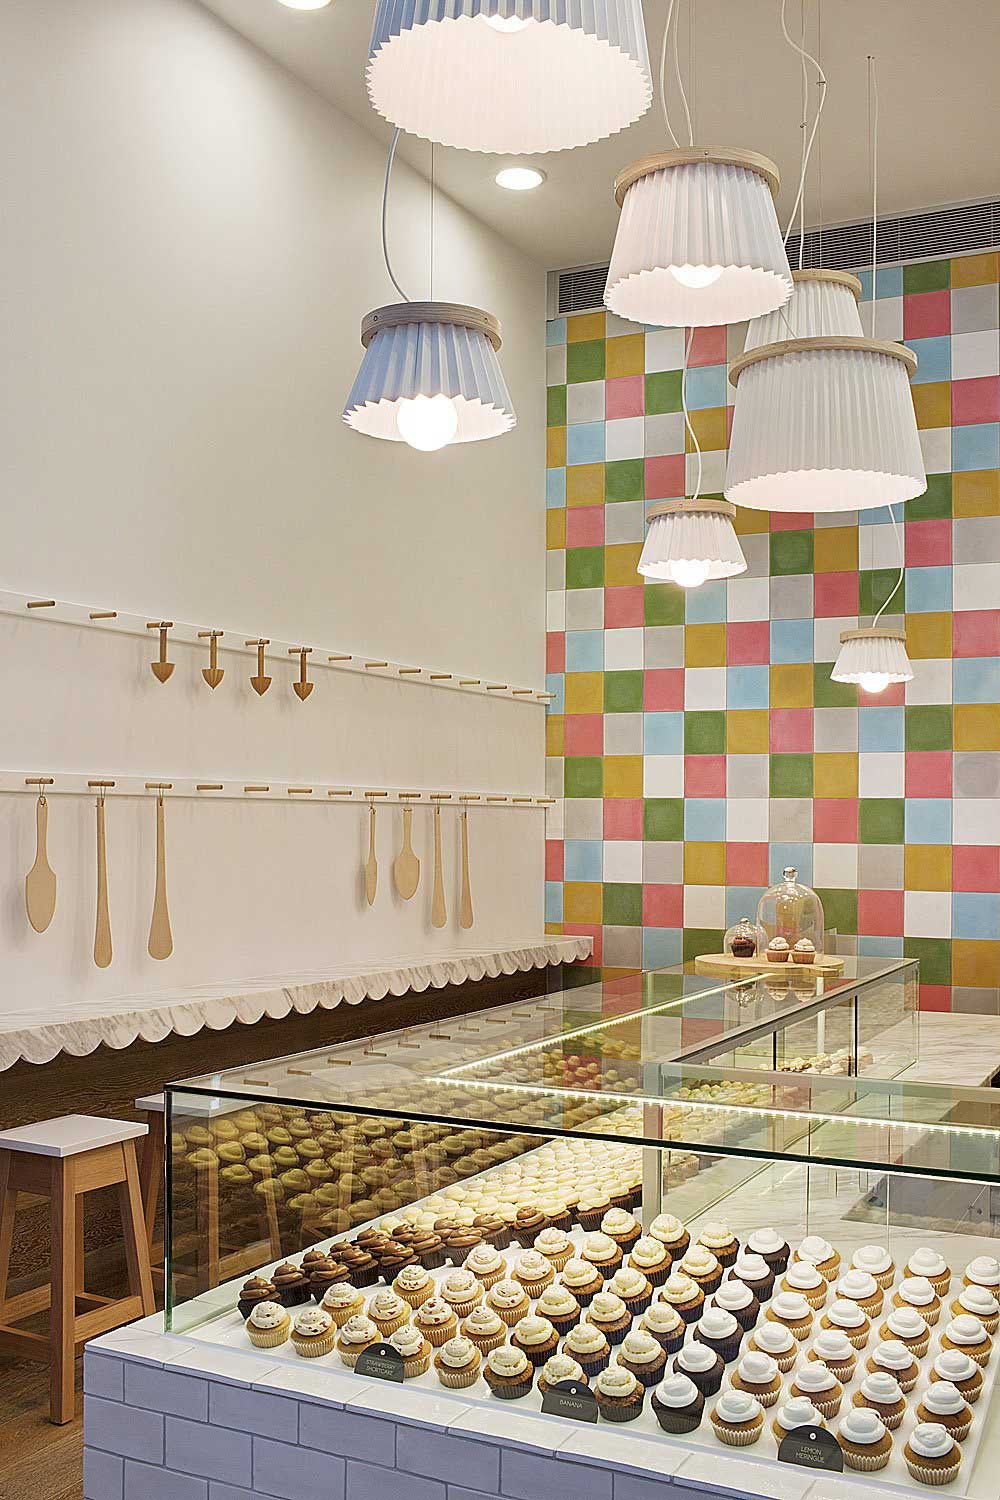 Interior Design for a Cupcake Shop with door open and glass exterior